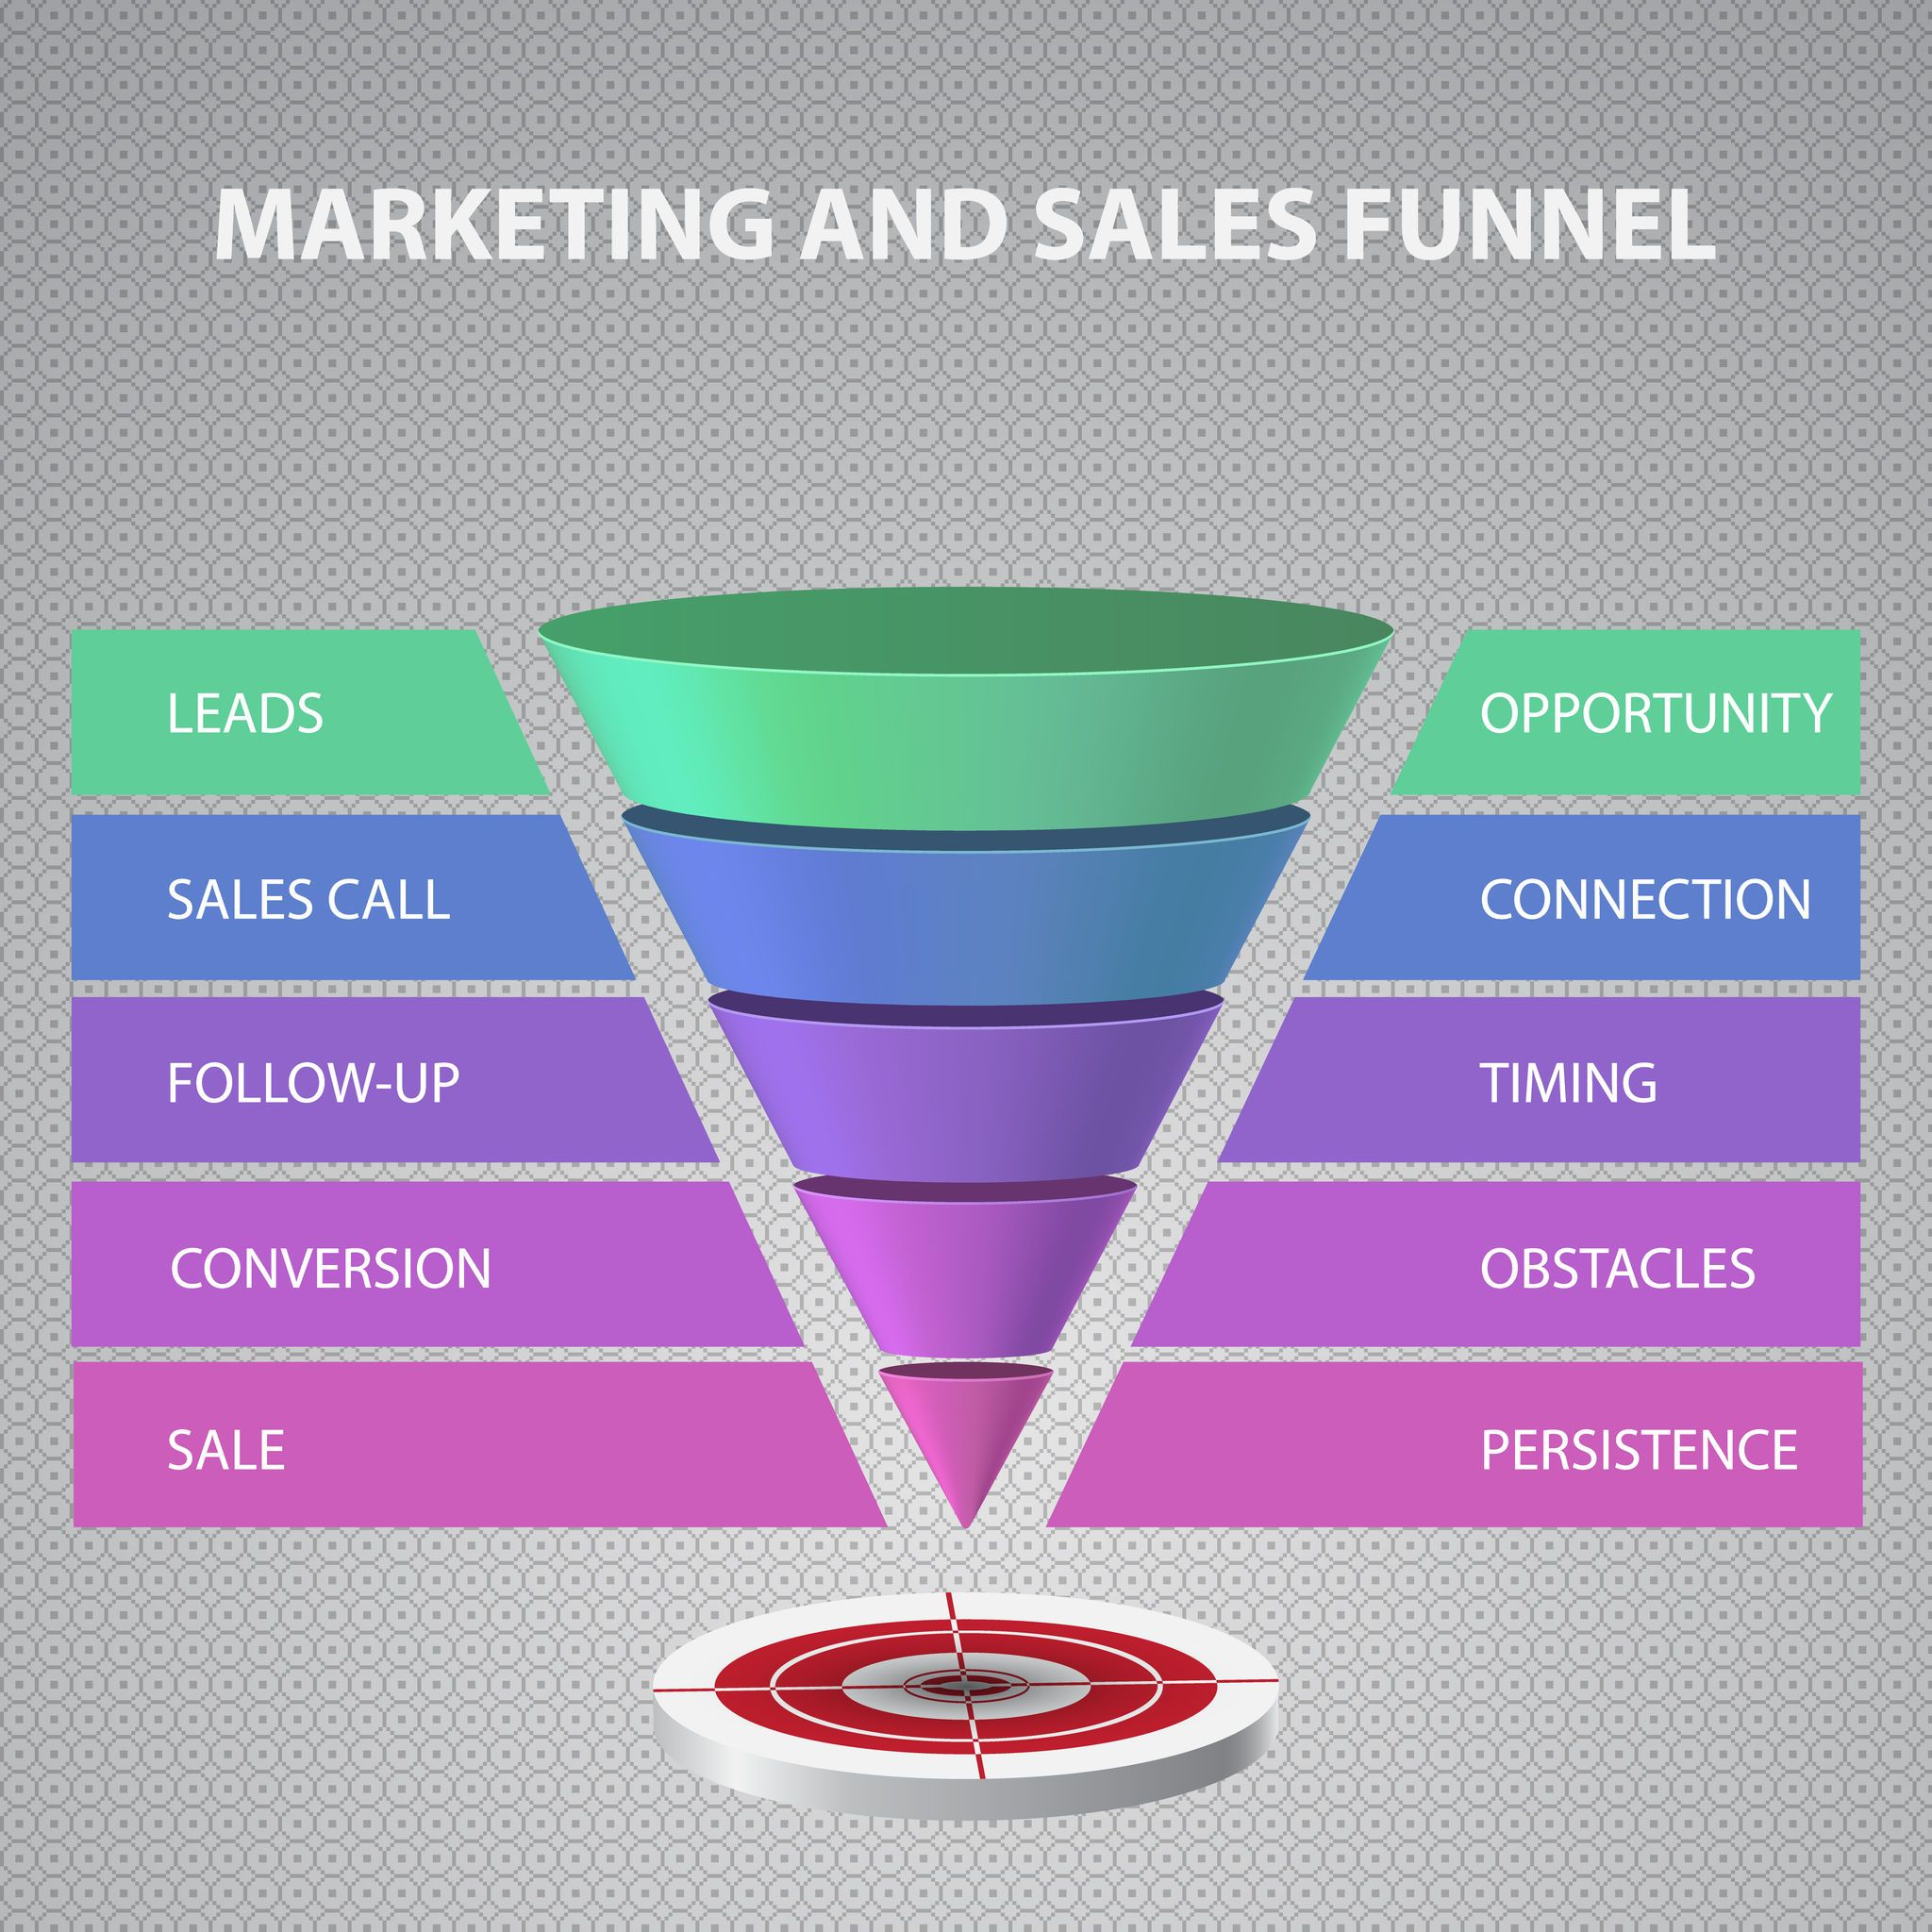 Learn to create marketing funnel for your business growth ...